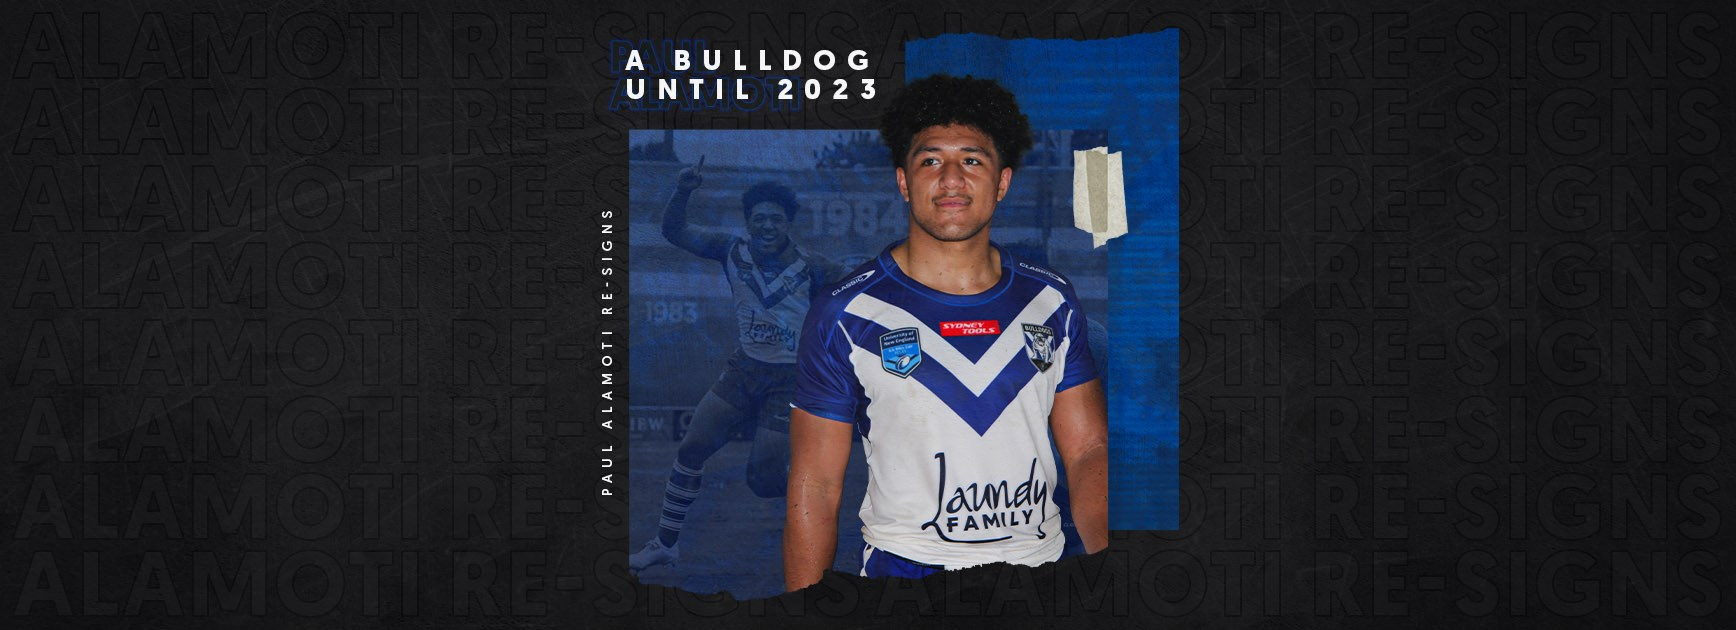 Paul Alamoti signs with the Bulldogs until the end of 2023